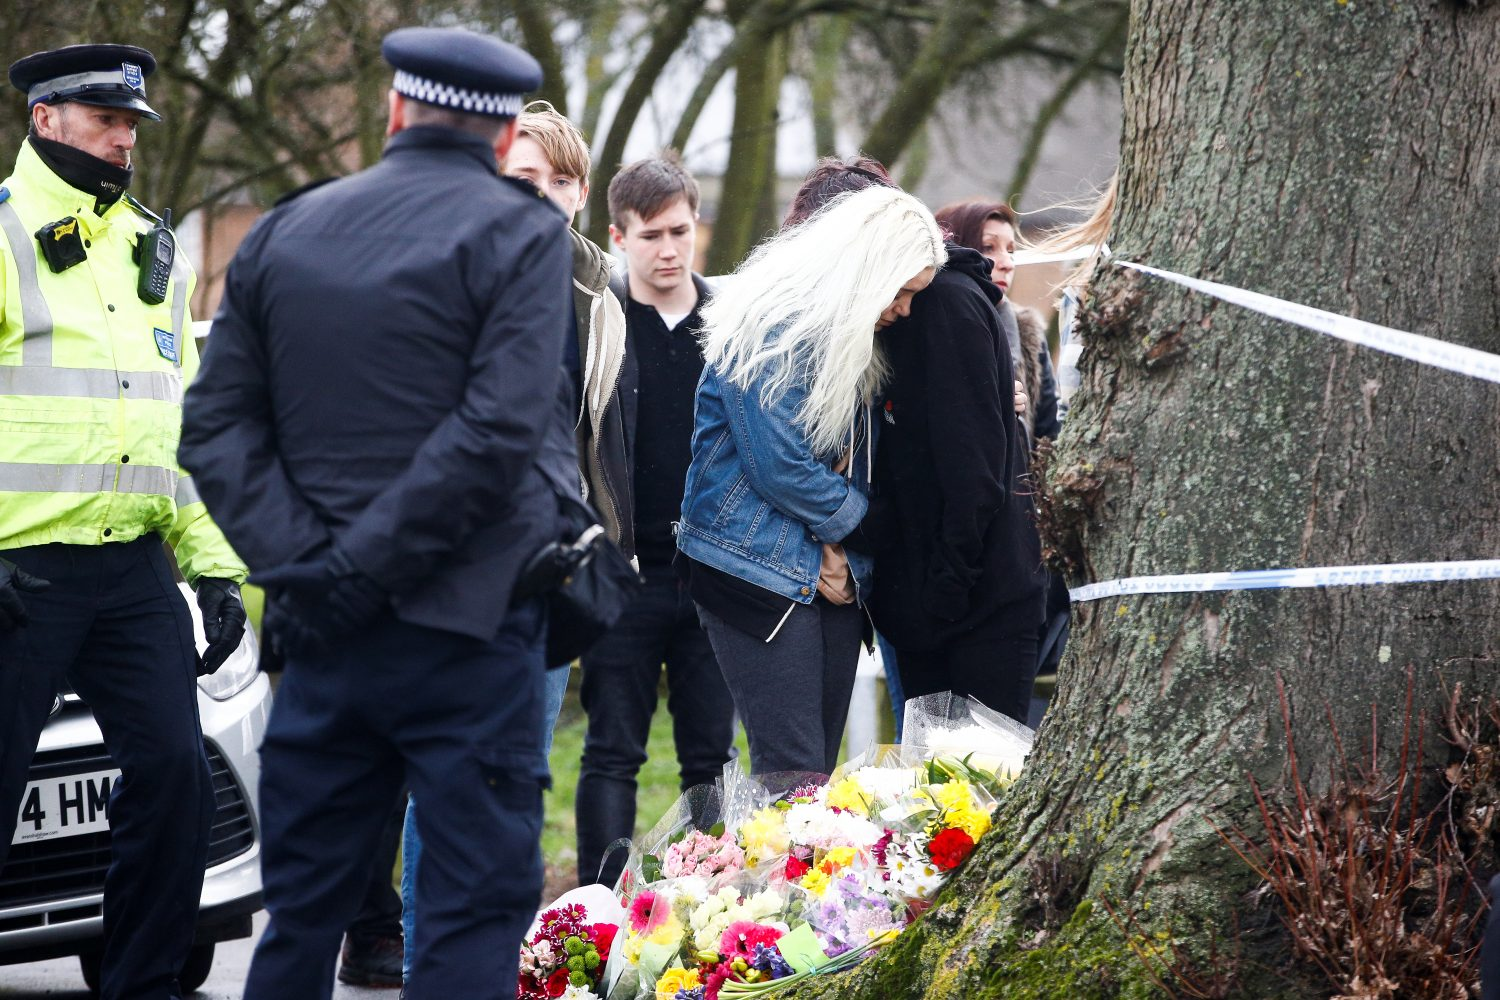 FILE PHOTO: People visit a site near to where 17-year-old Jodie Chesney was killed, at the Saint Neots Play Park in Harold Hill, east London, Britain March 3, 2019. REUTERS/Henry Nicholls